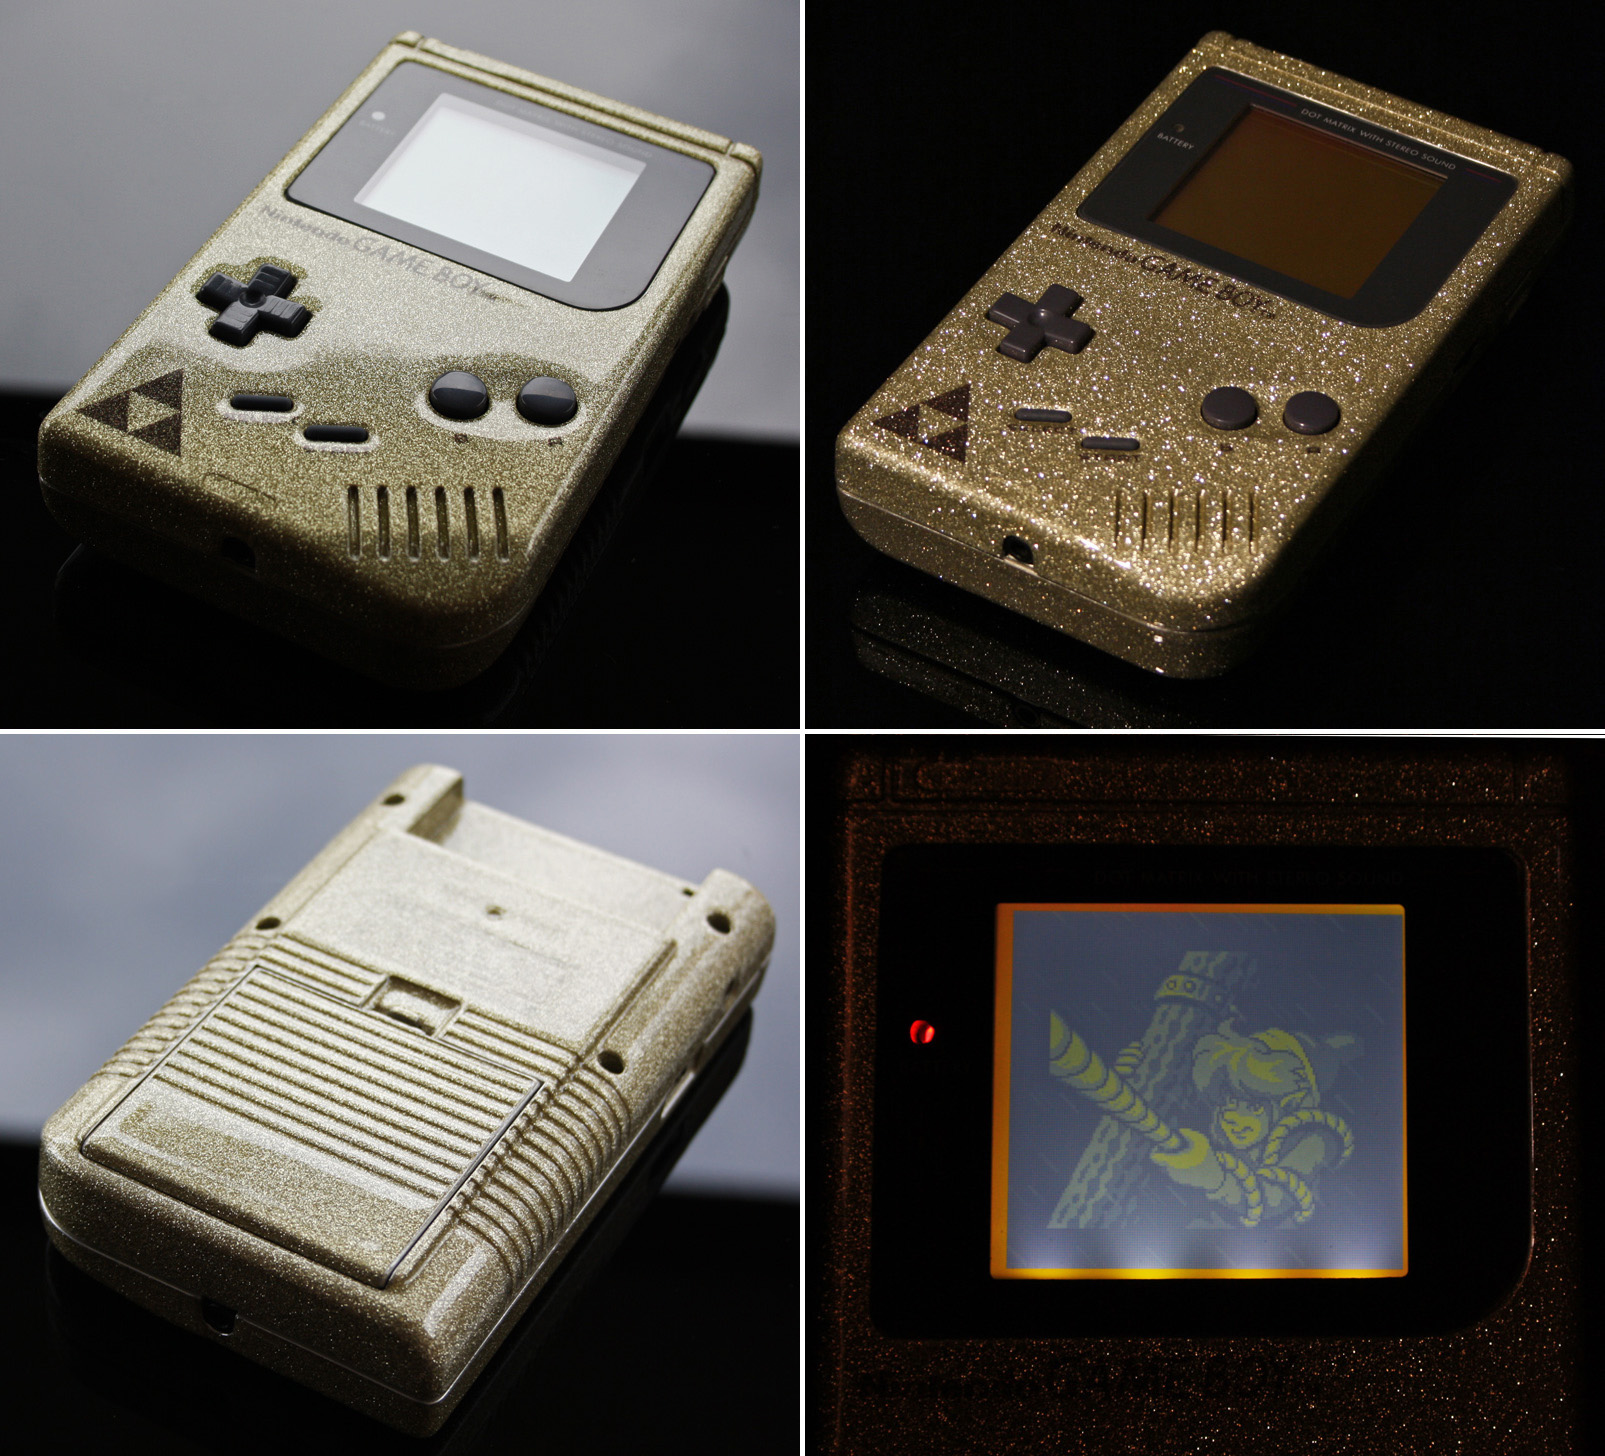 custom Zelda Gameboy (gold flake) by Zoki64